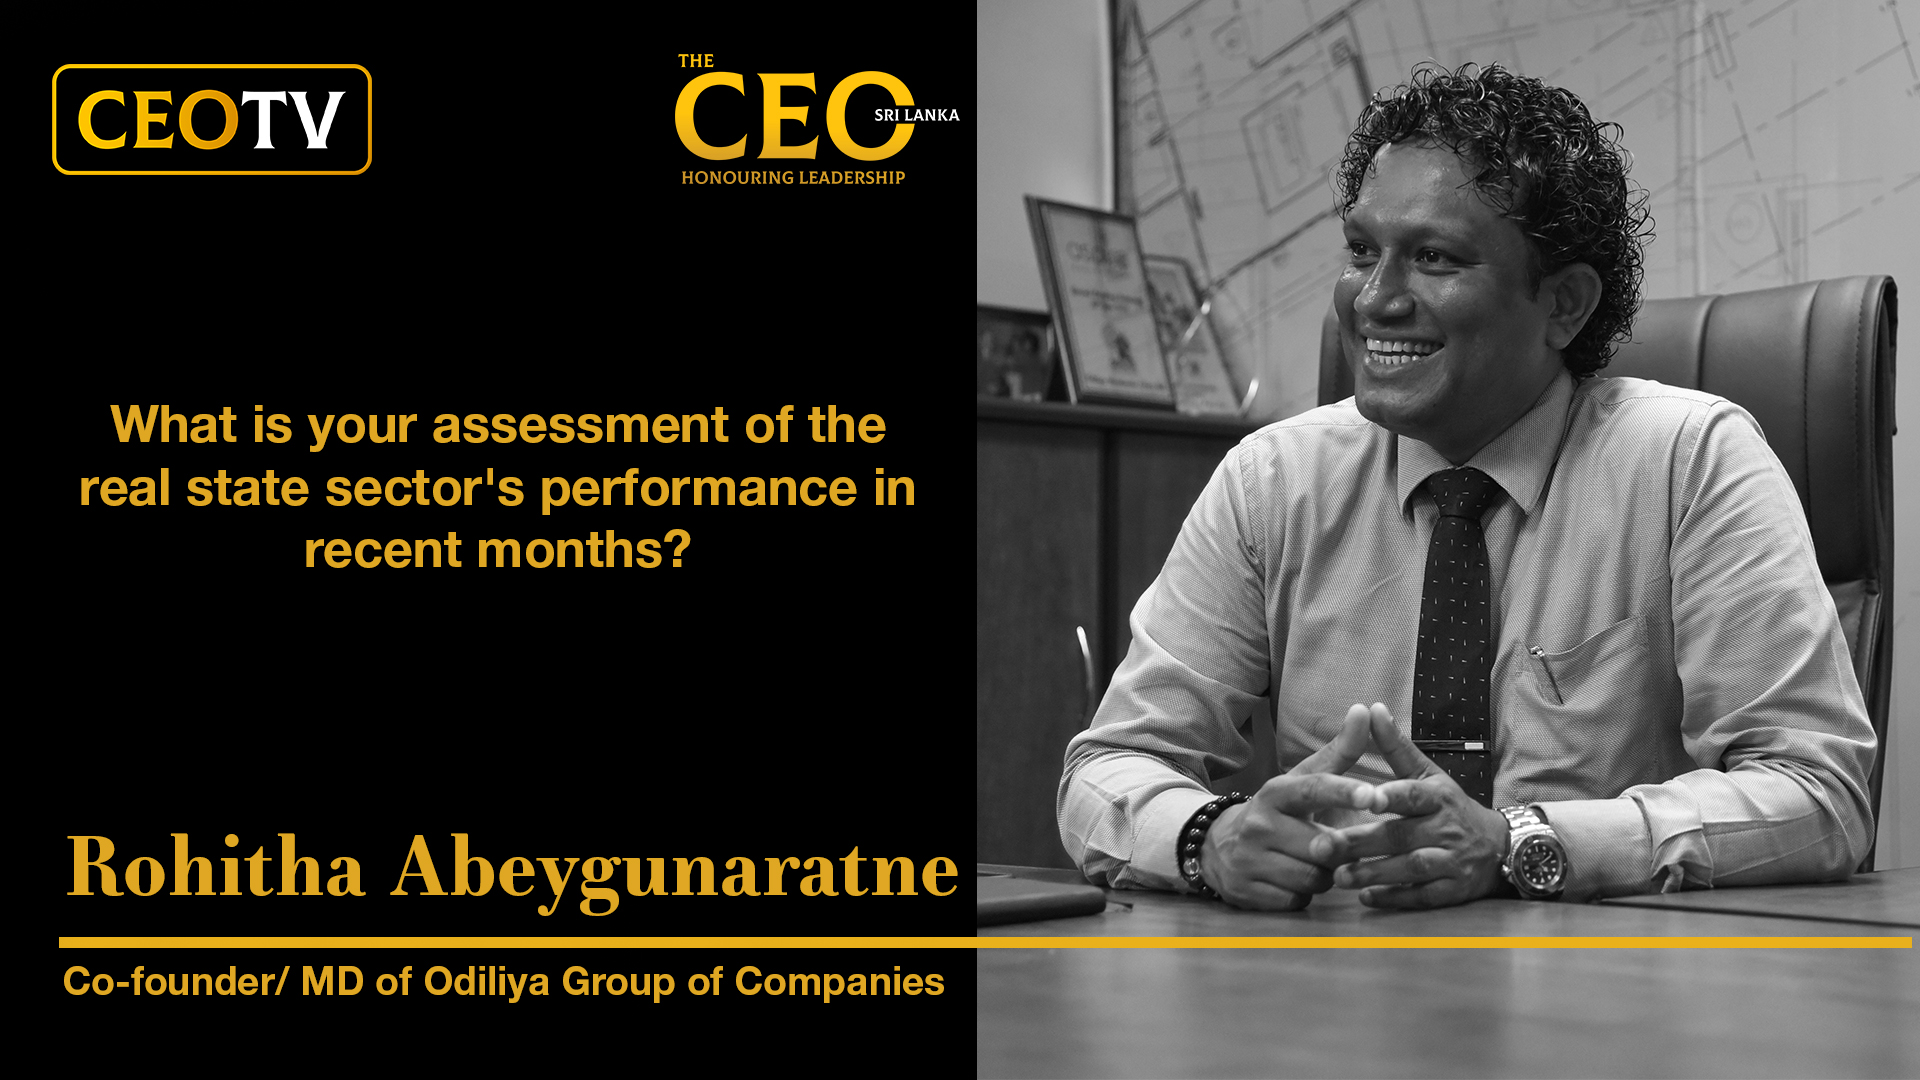 An Interview with Mr. Rohitha Abeygunaratne, the Co-founder/MD of Odiliya Group of Companies